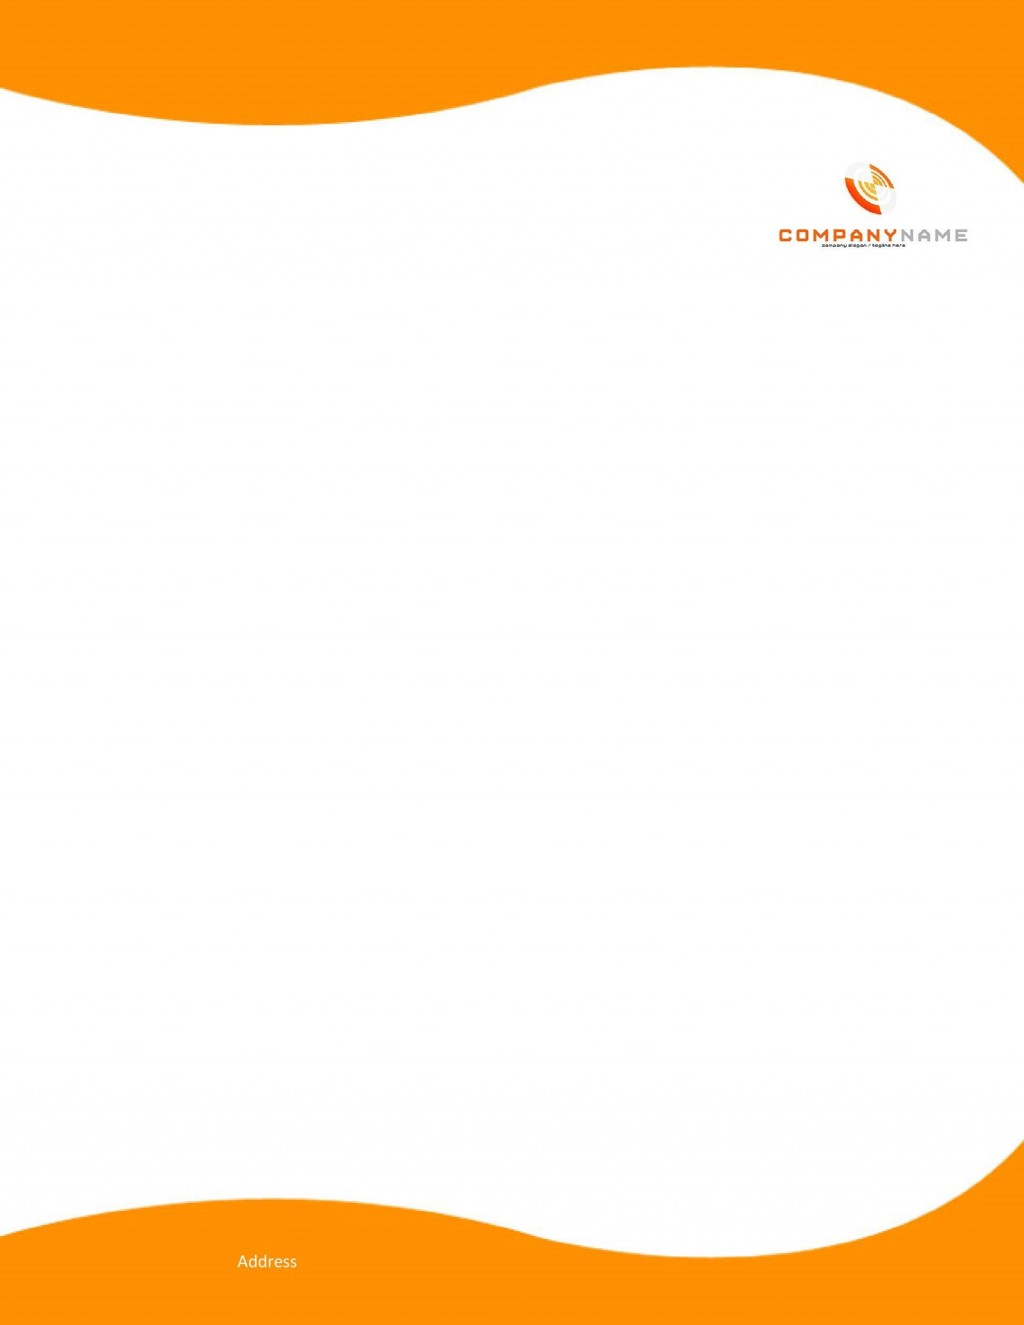 007 Unbelievable Company Letterhead Format In Word Free Download Design  Sample Template 2020Large